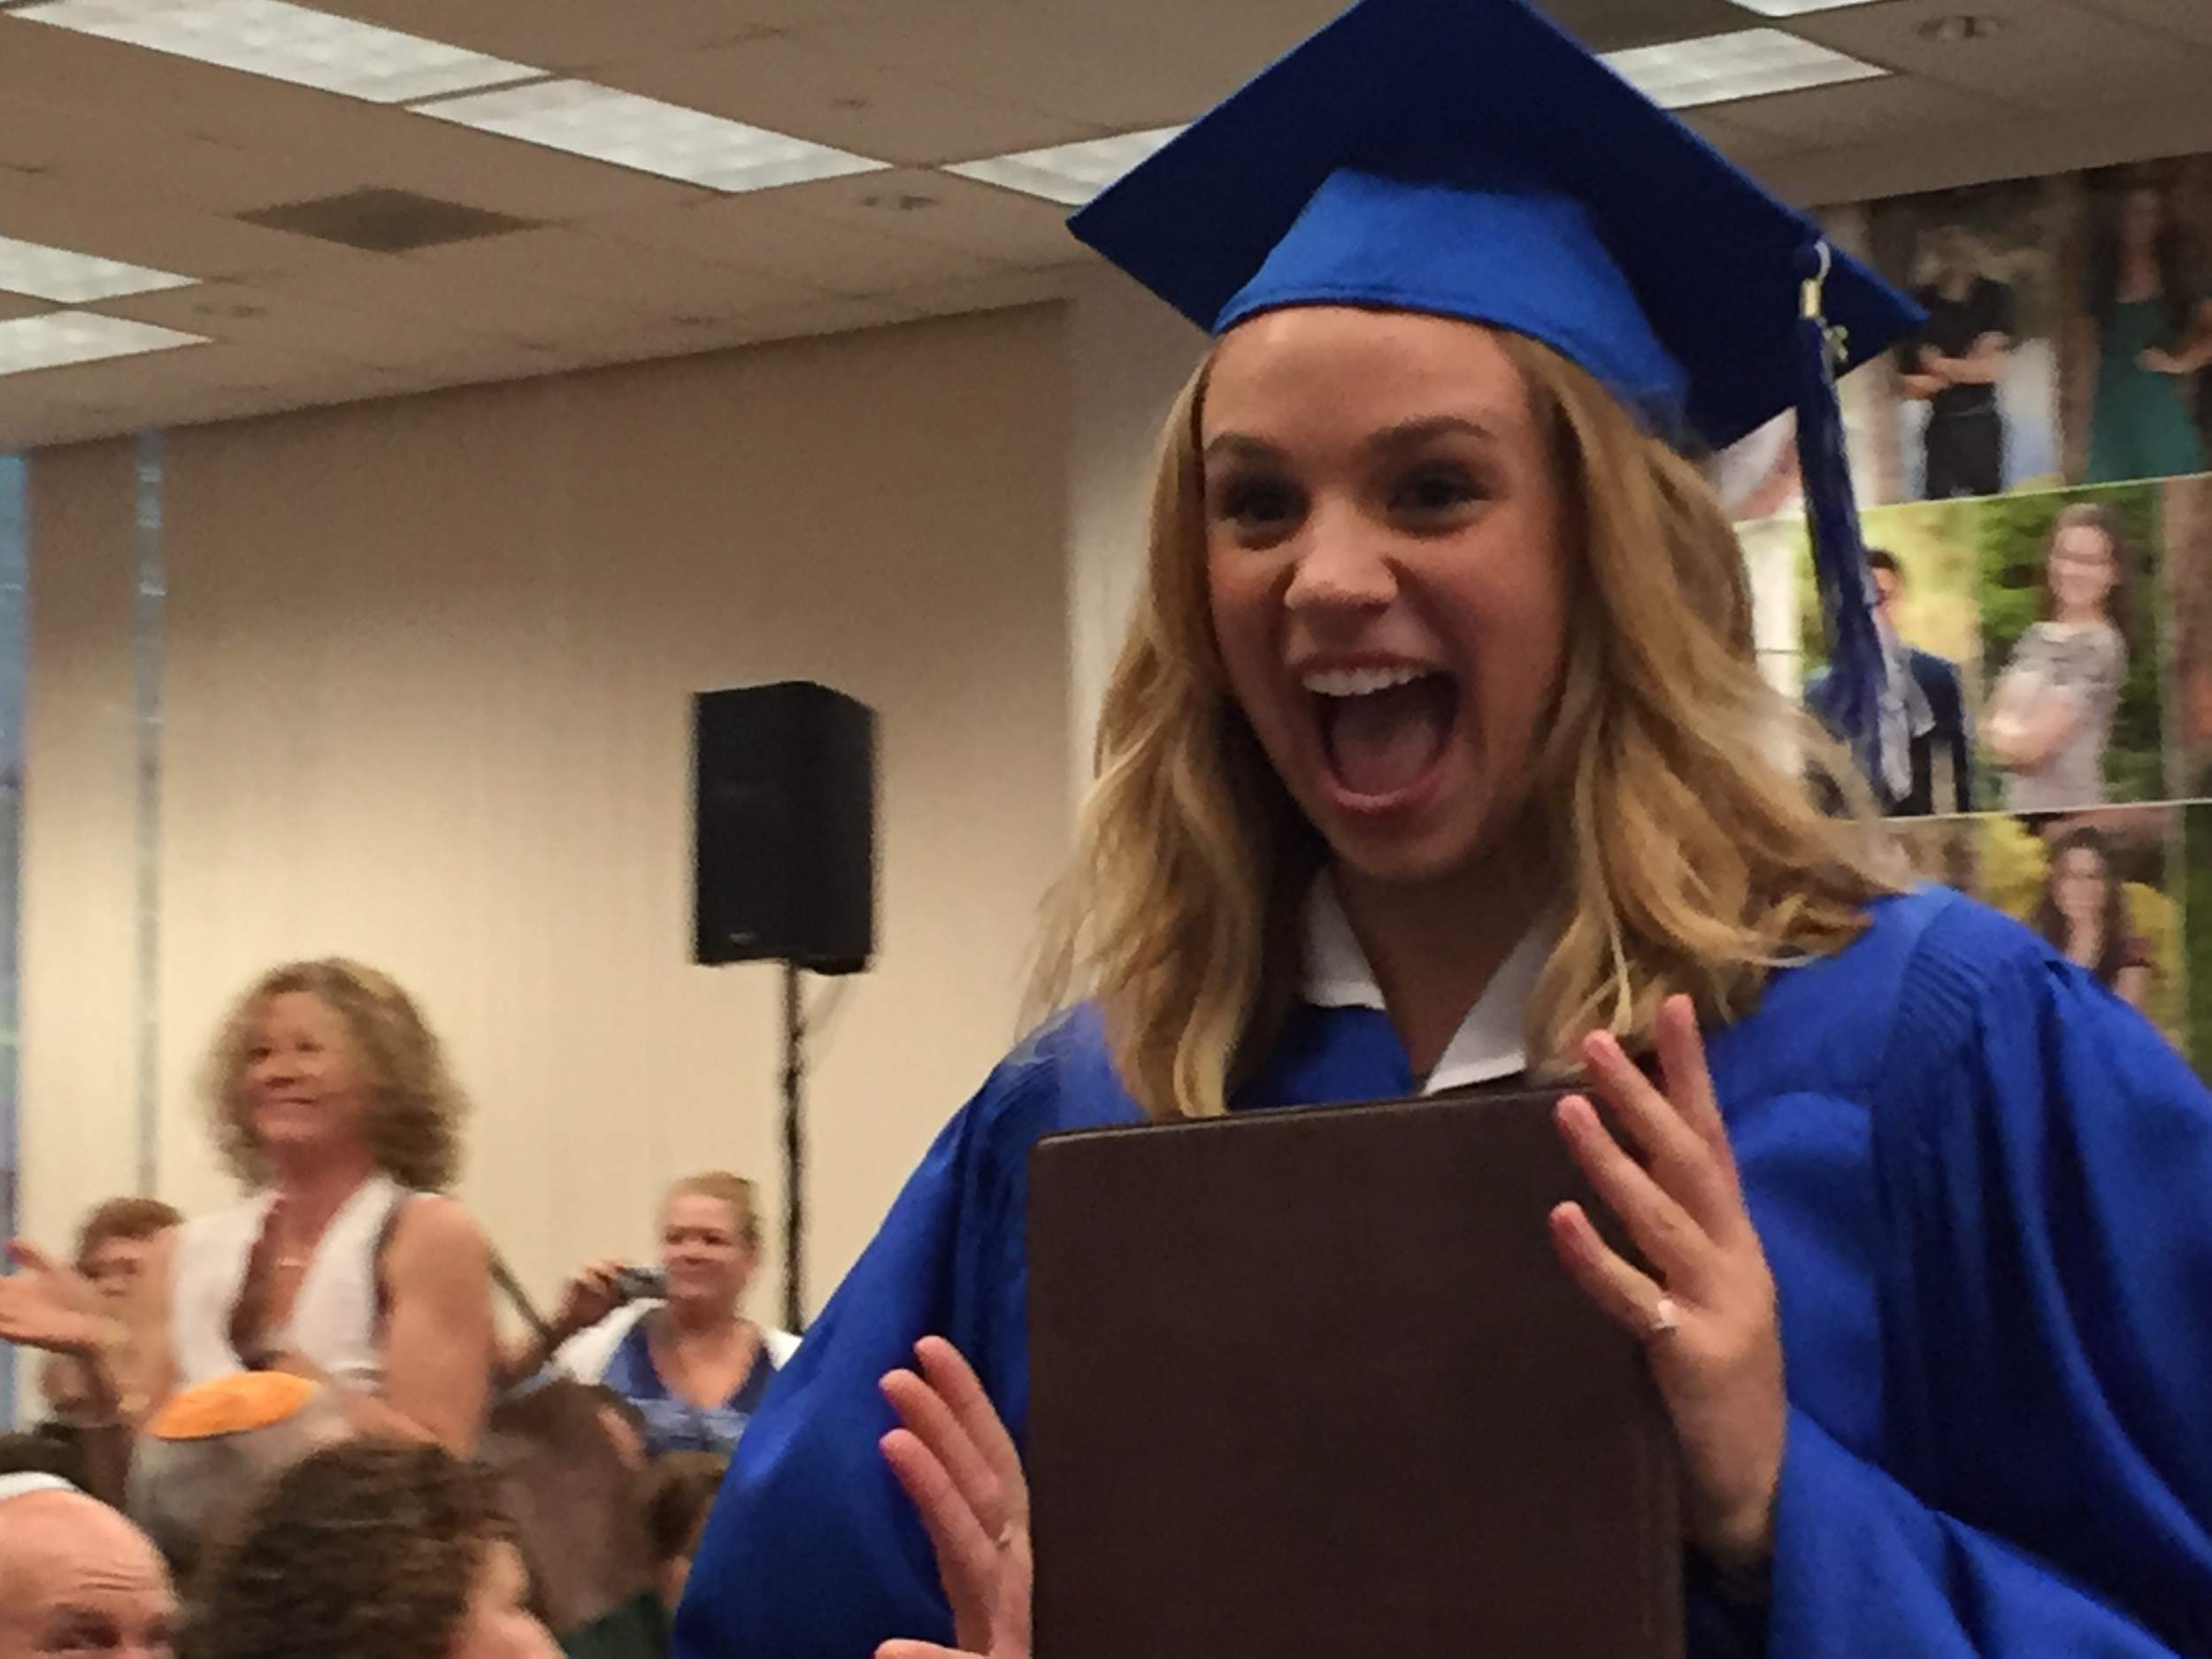 Neice ilana upon receiving her high school diploma, getting ready to fly the coop.